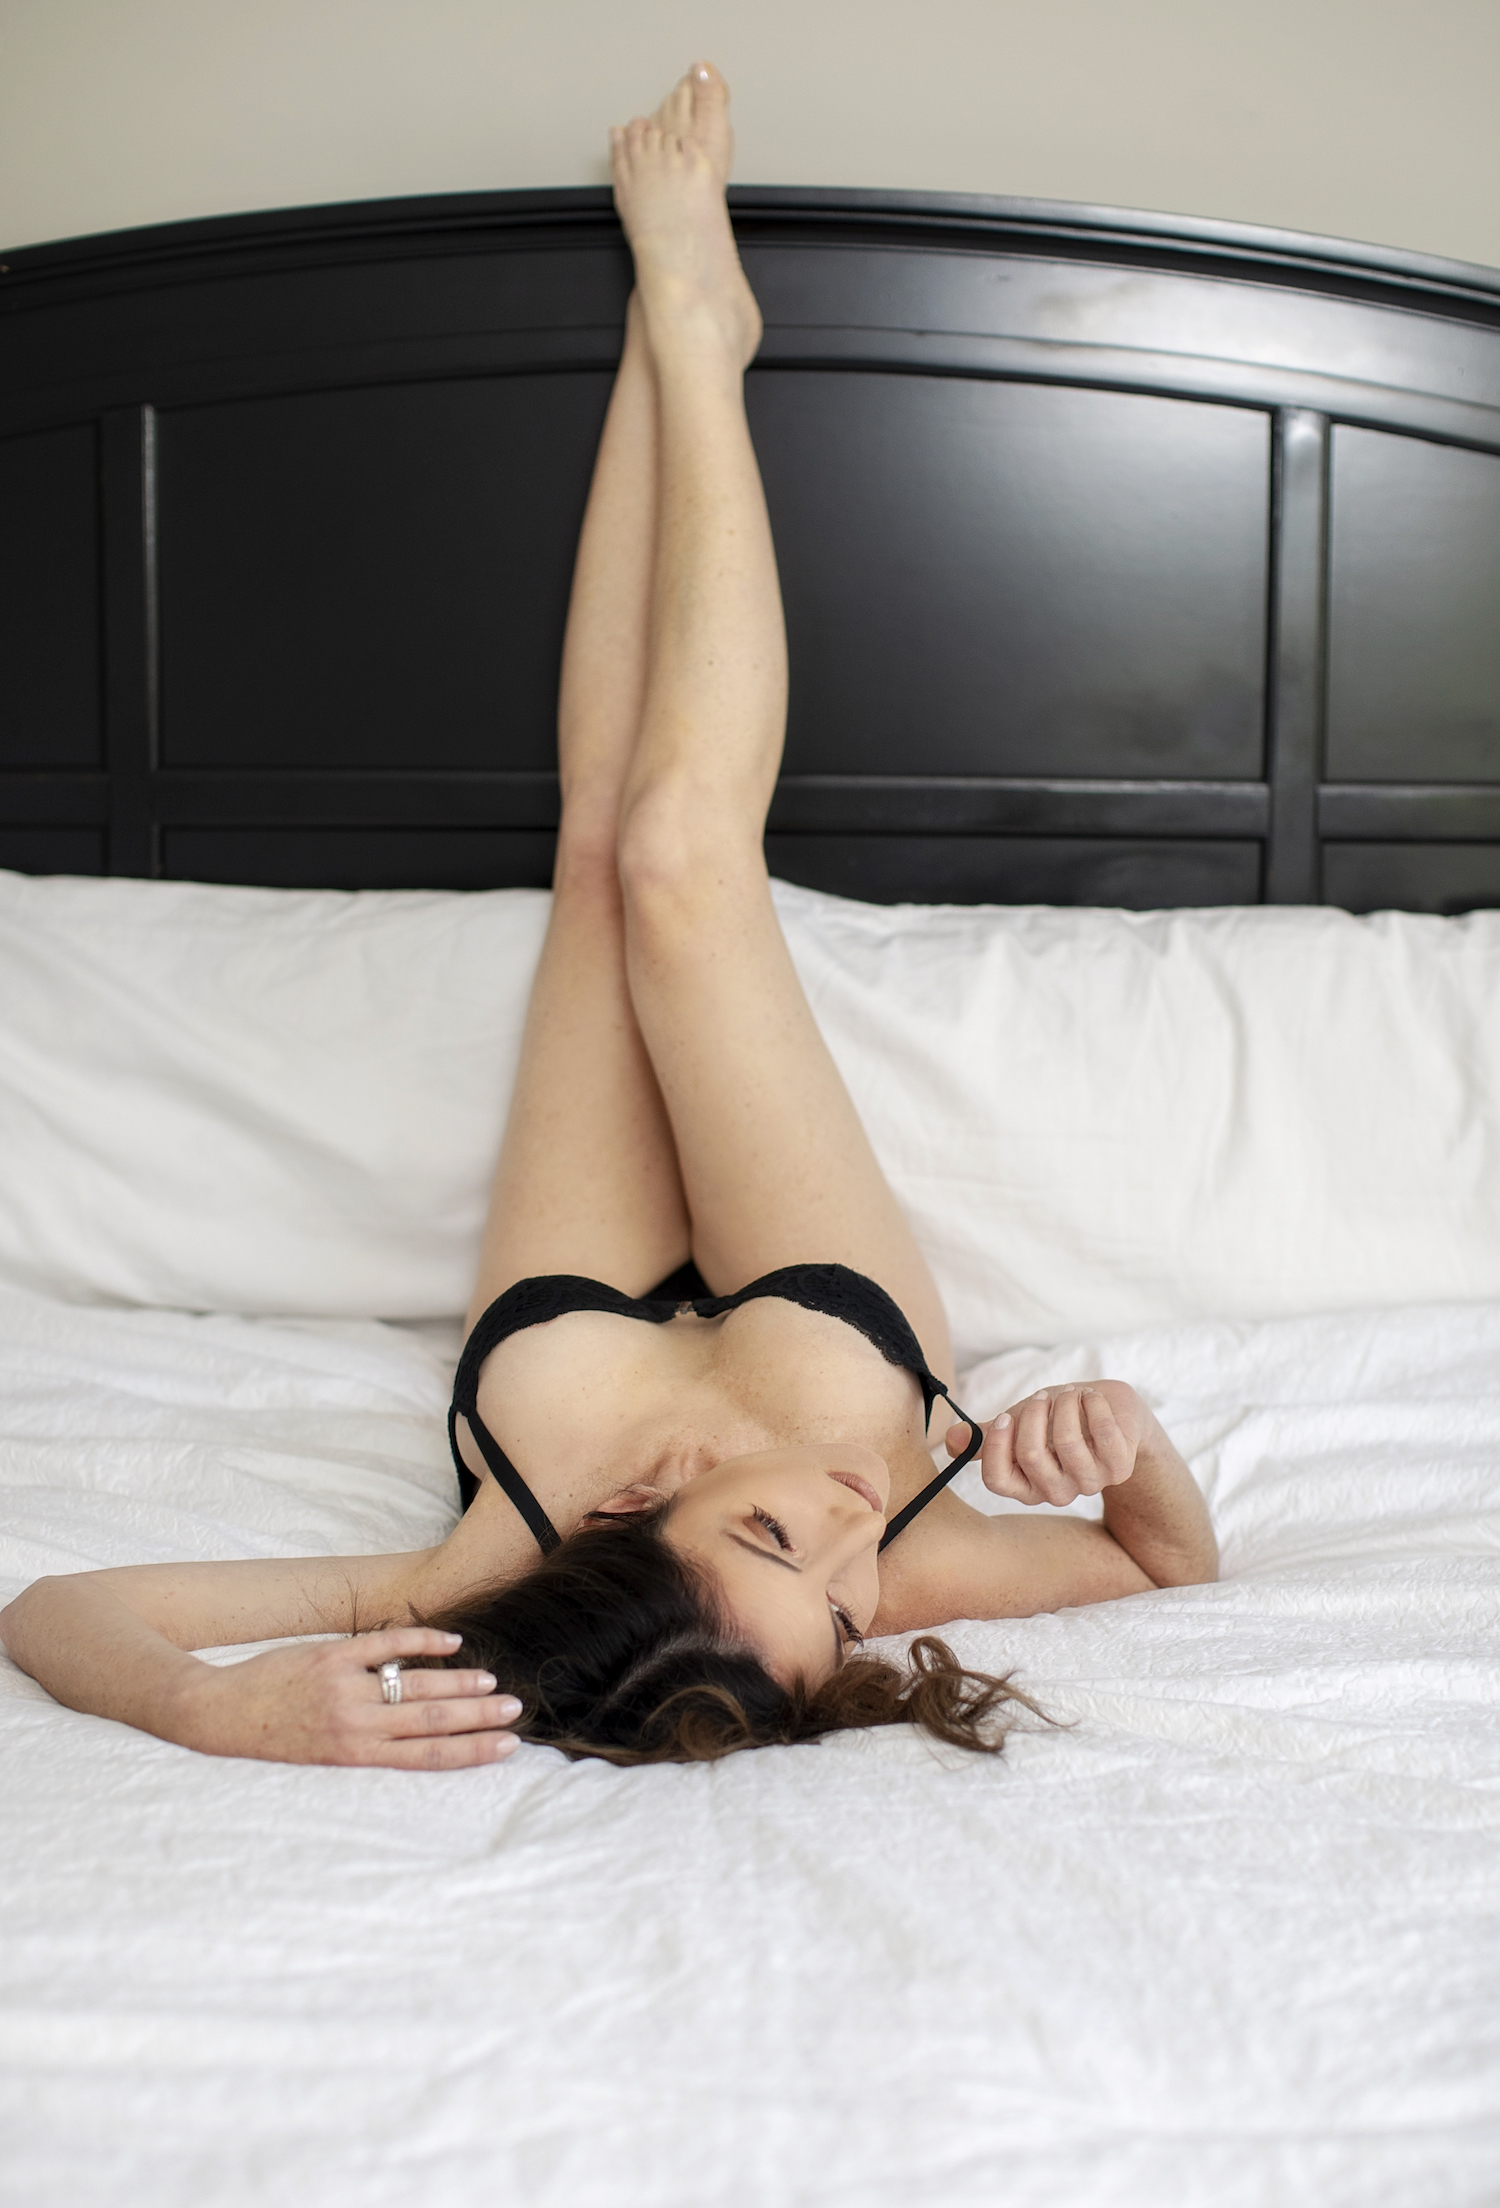 Sexy boudoir photo of a woman in black lingerie while lying on a bed.